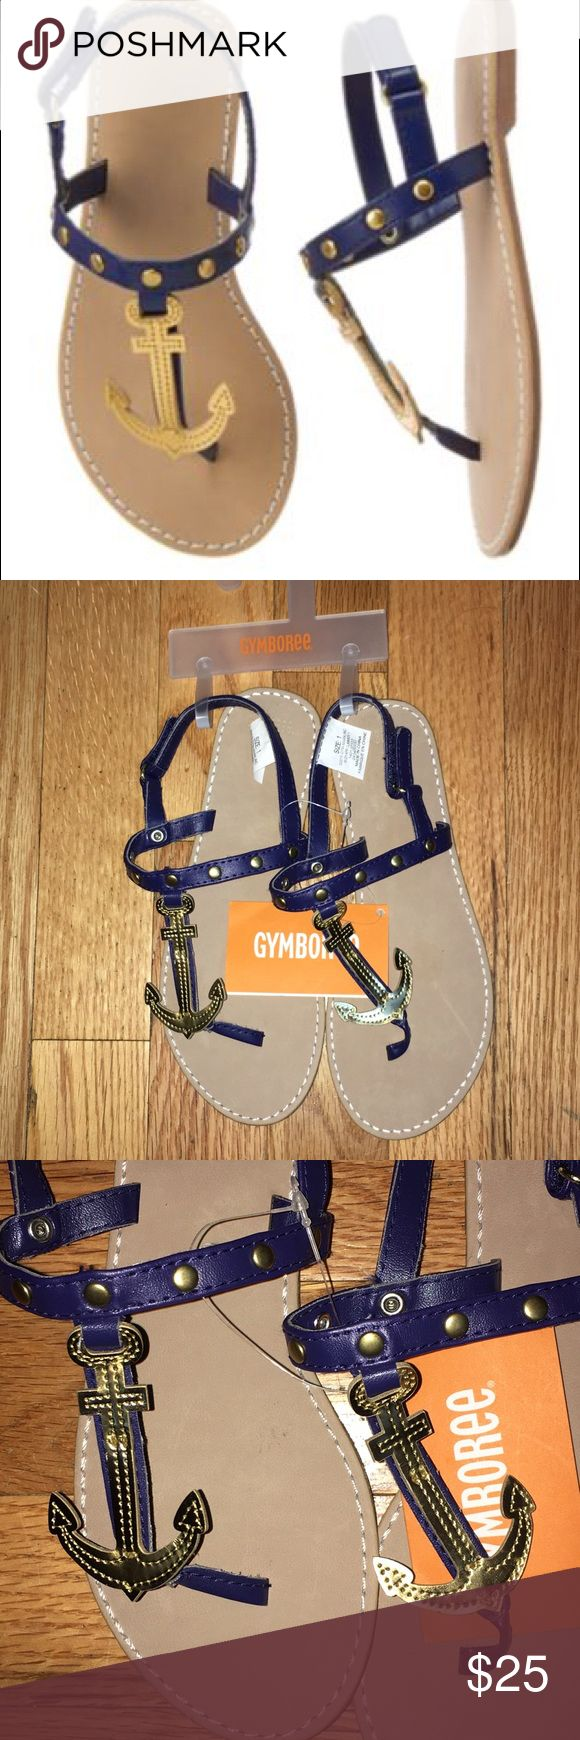 Gymboree cute on the coast new with tags size 1 Adorable ⚓️Anchor coastal nautical sandals for summer. Girls Gymboree new with tags size one. Smoke-free pet free home. Gymboree Shoes Sandals & Flip Flops